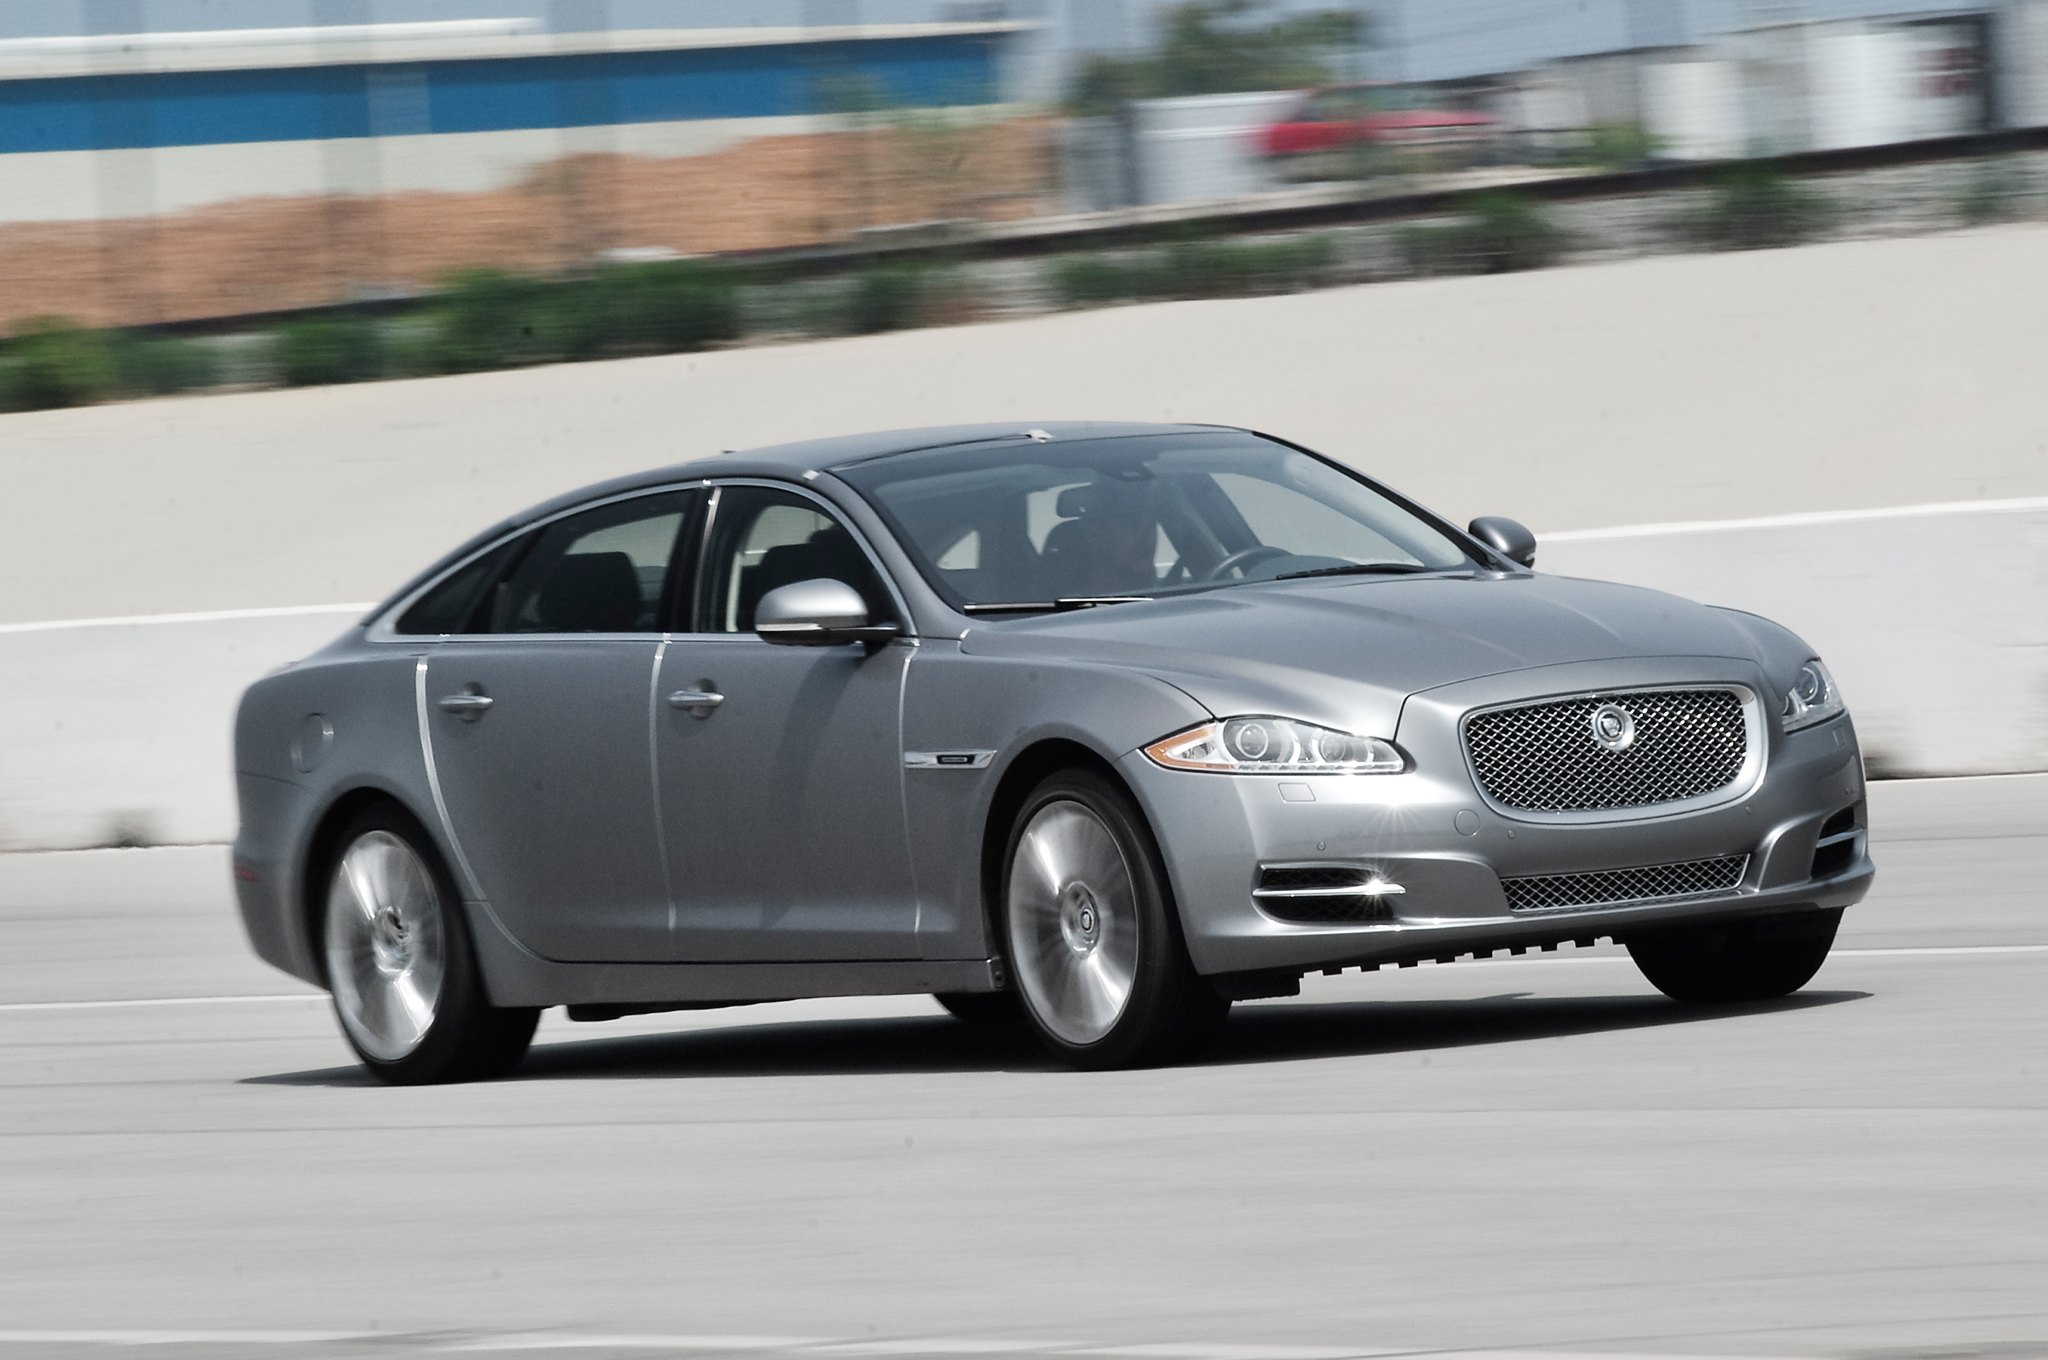 2013 Jaguar XJL 5.0 Supercharged First Test